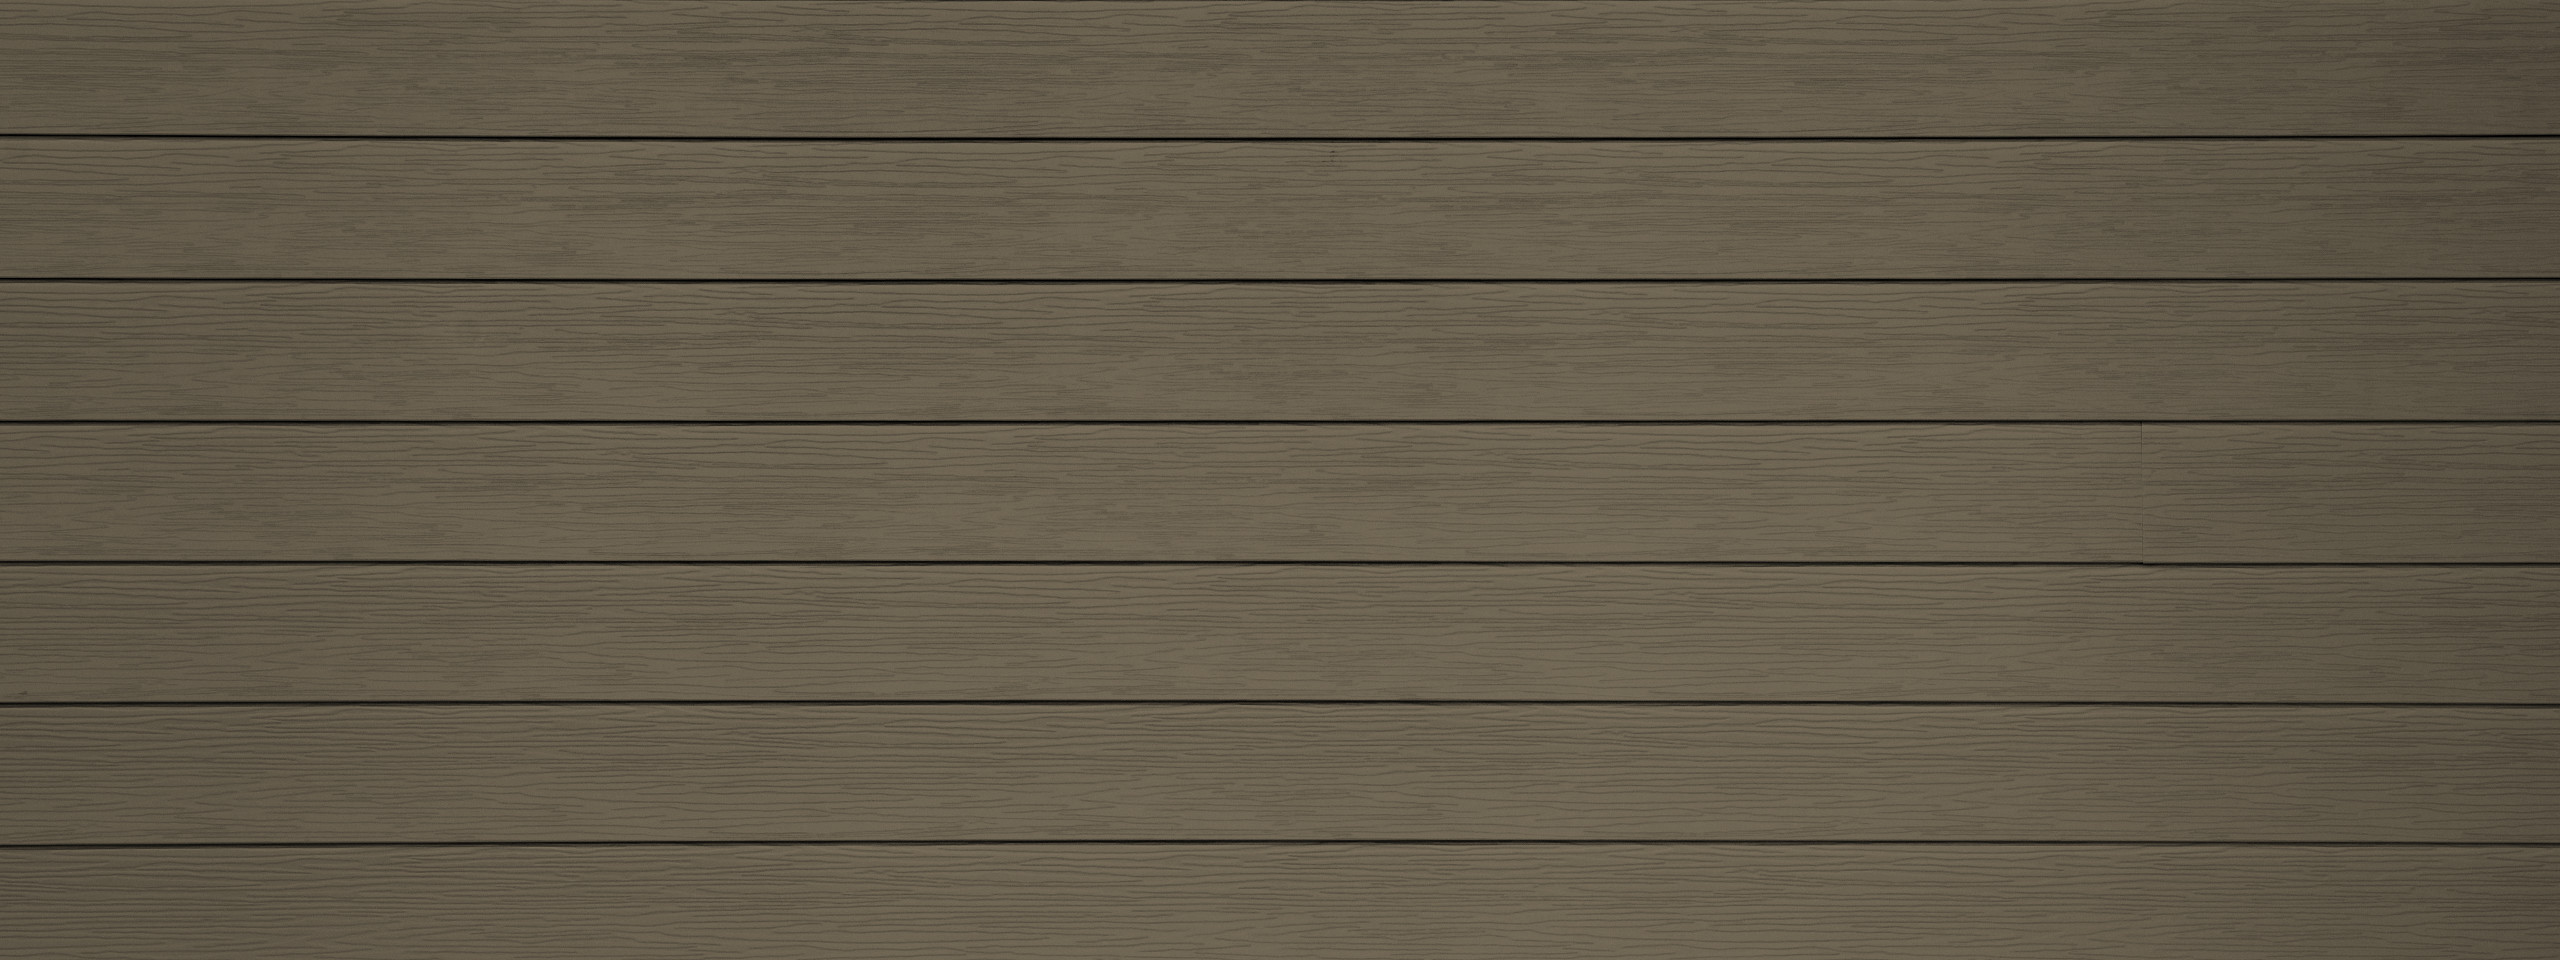 Entex traditional lap canyon horizontal steel siding